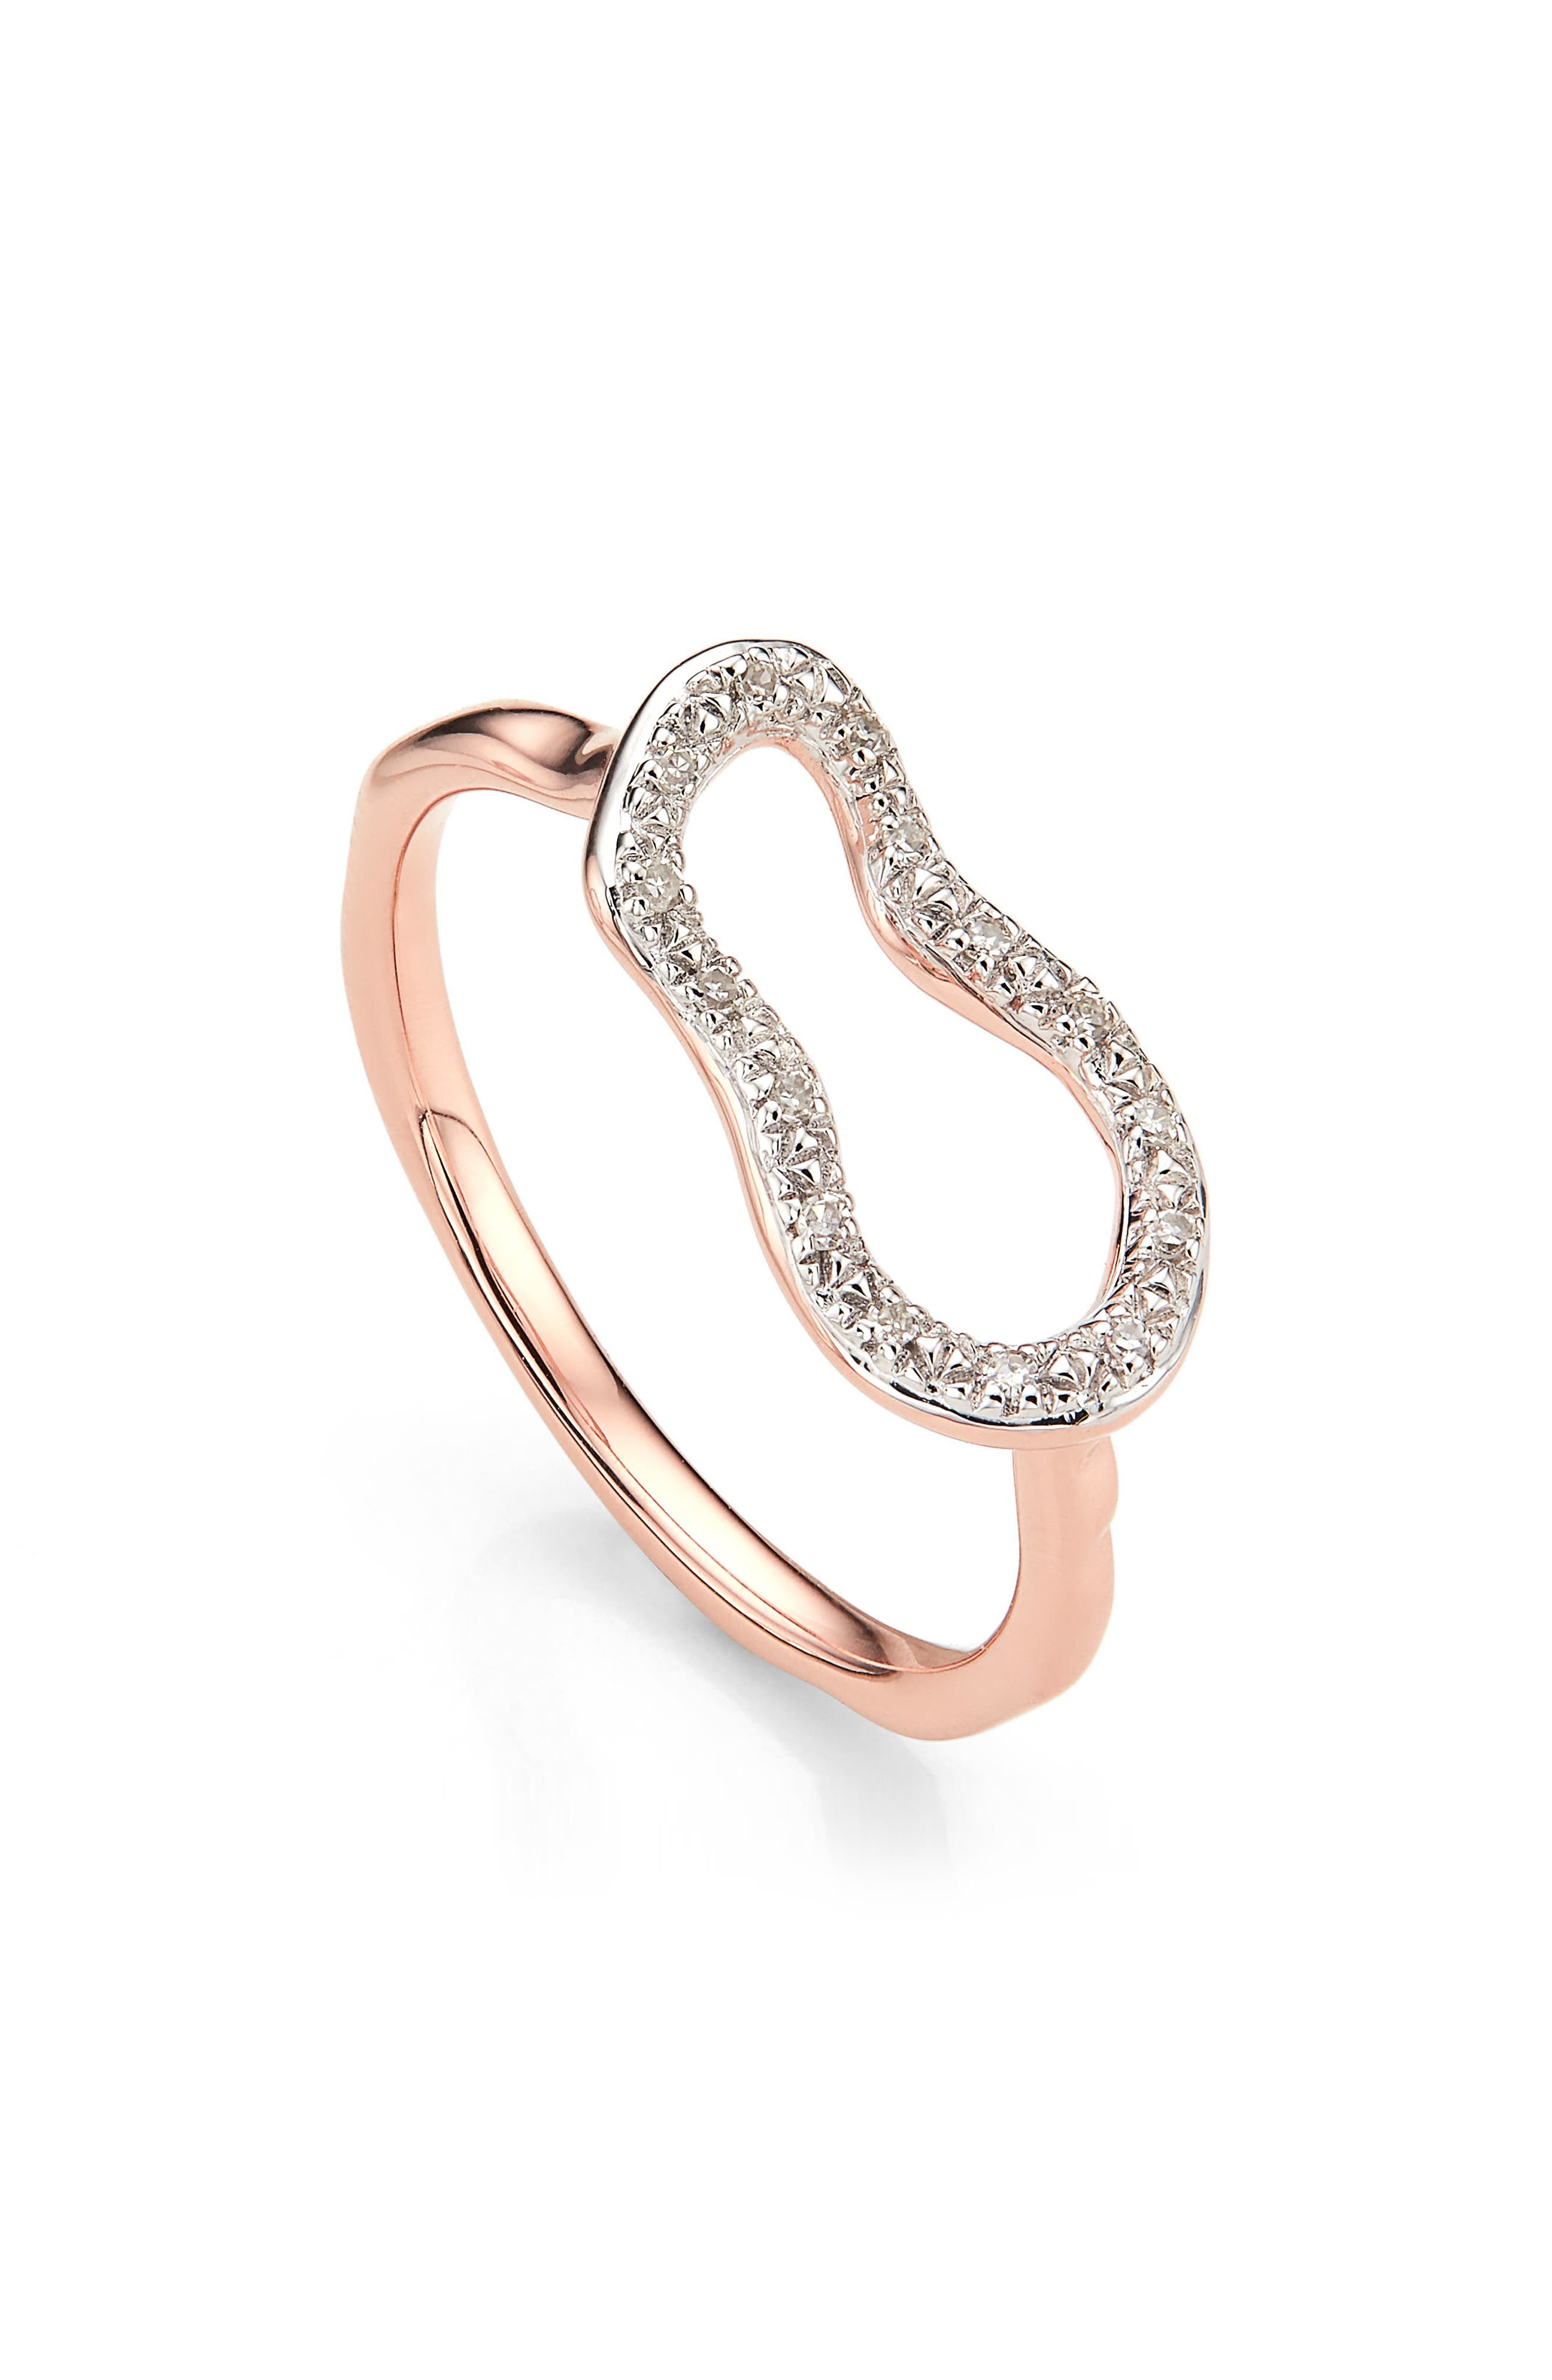 MONICA VINADER Riva Mini Pod Vermeil Diamond Ring, Main, color, ROSE GOLD/ DIAMOND